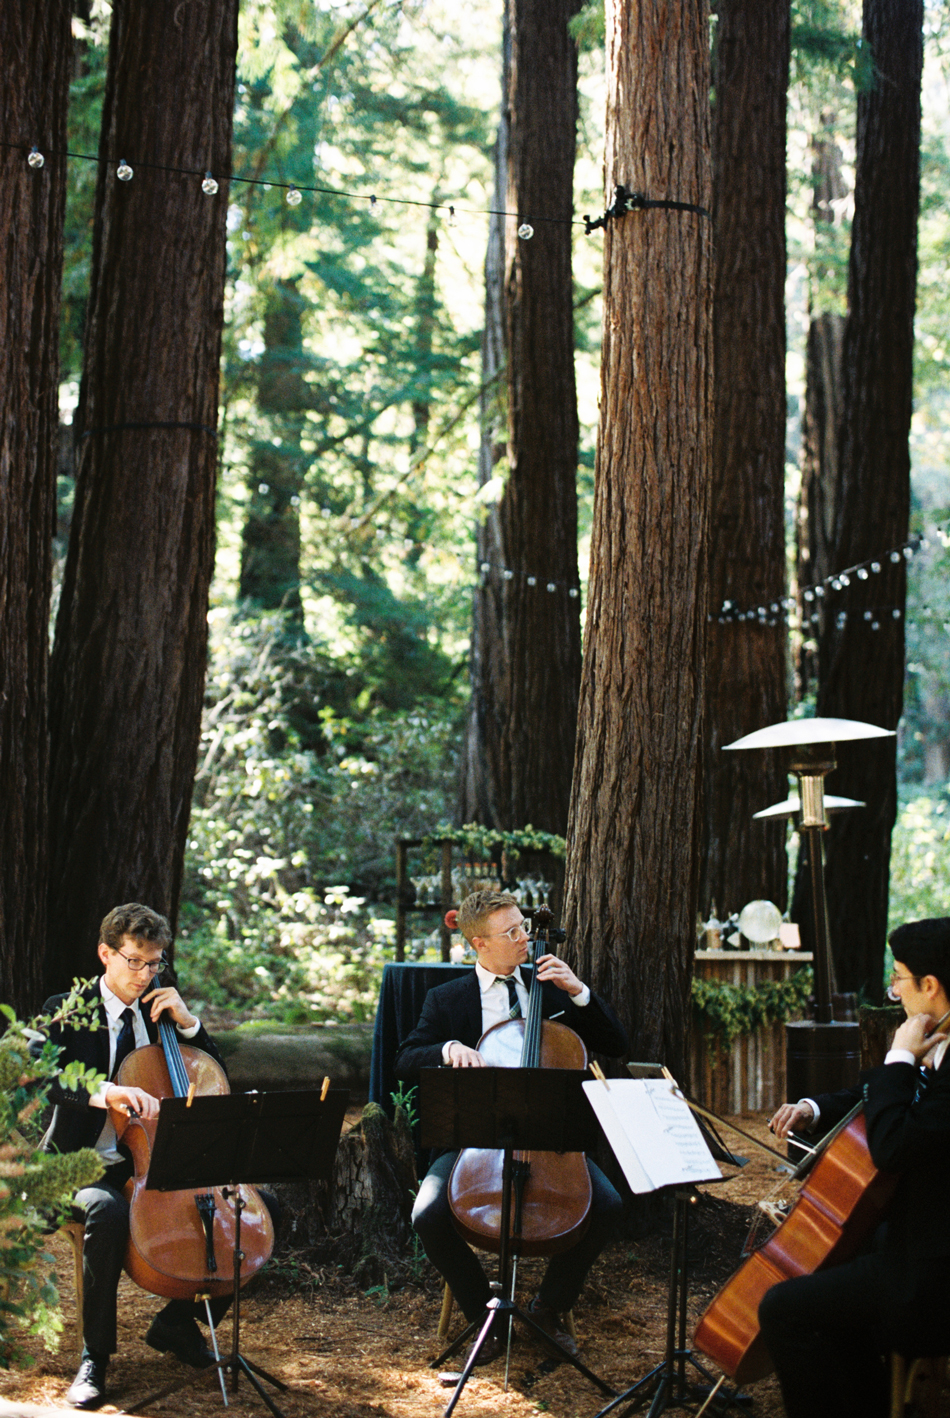 cello musicians wedding music outdoor forest